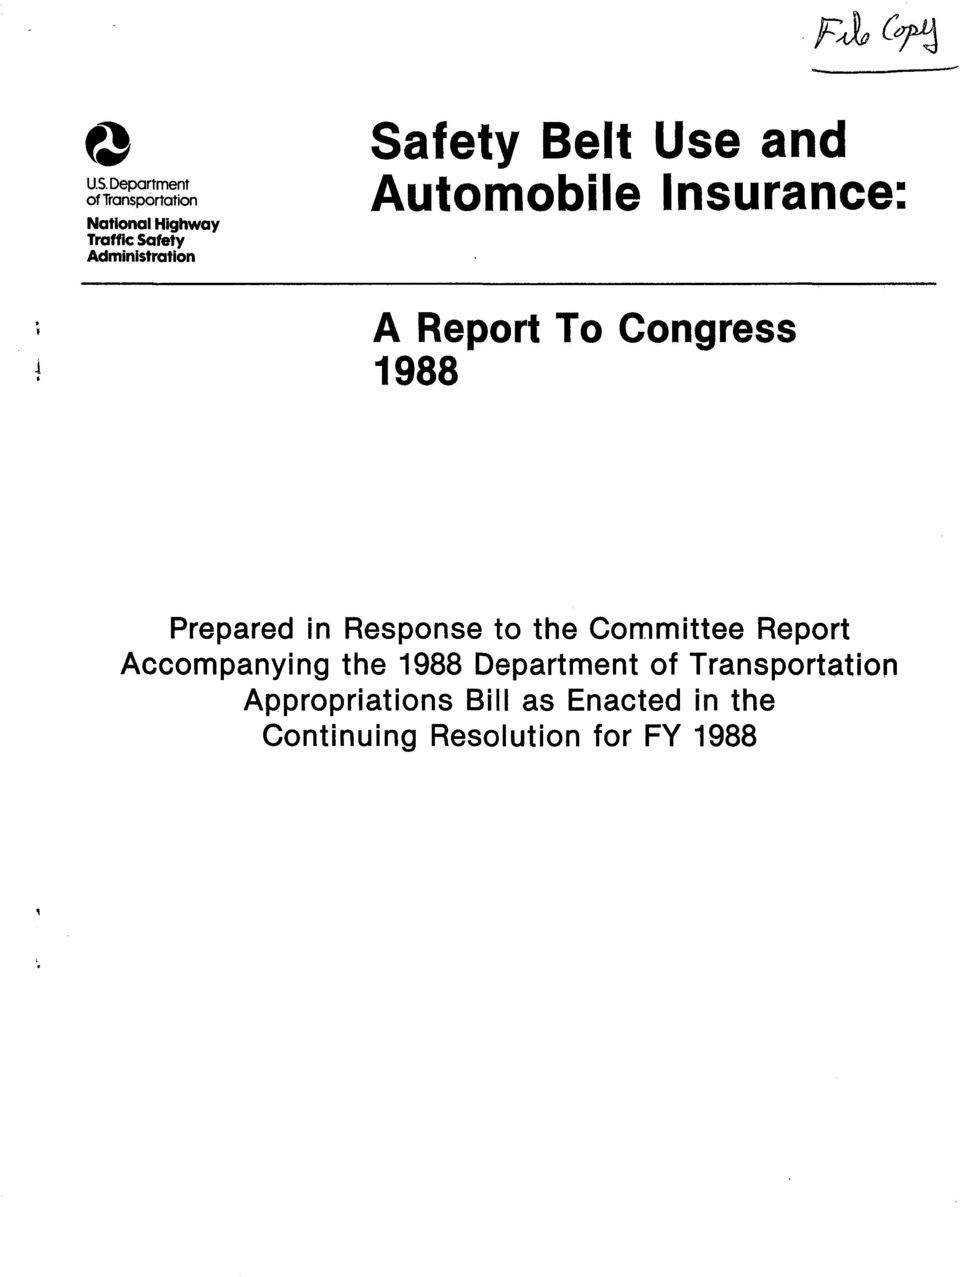 in Response to the Committee Report Accompanying the 1988 Department of